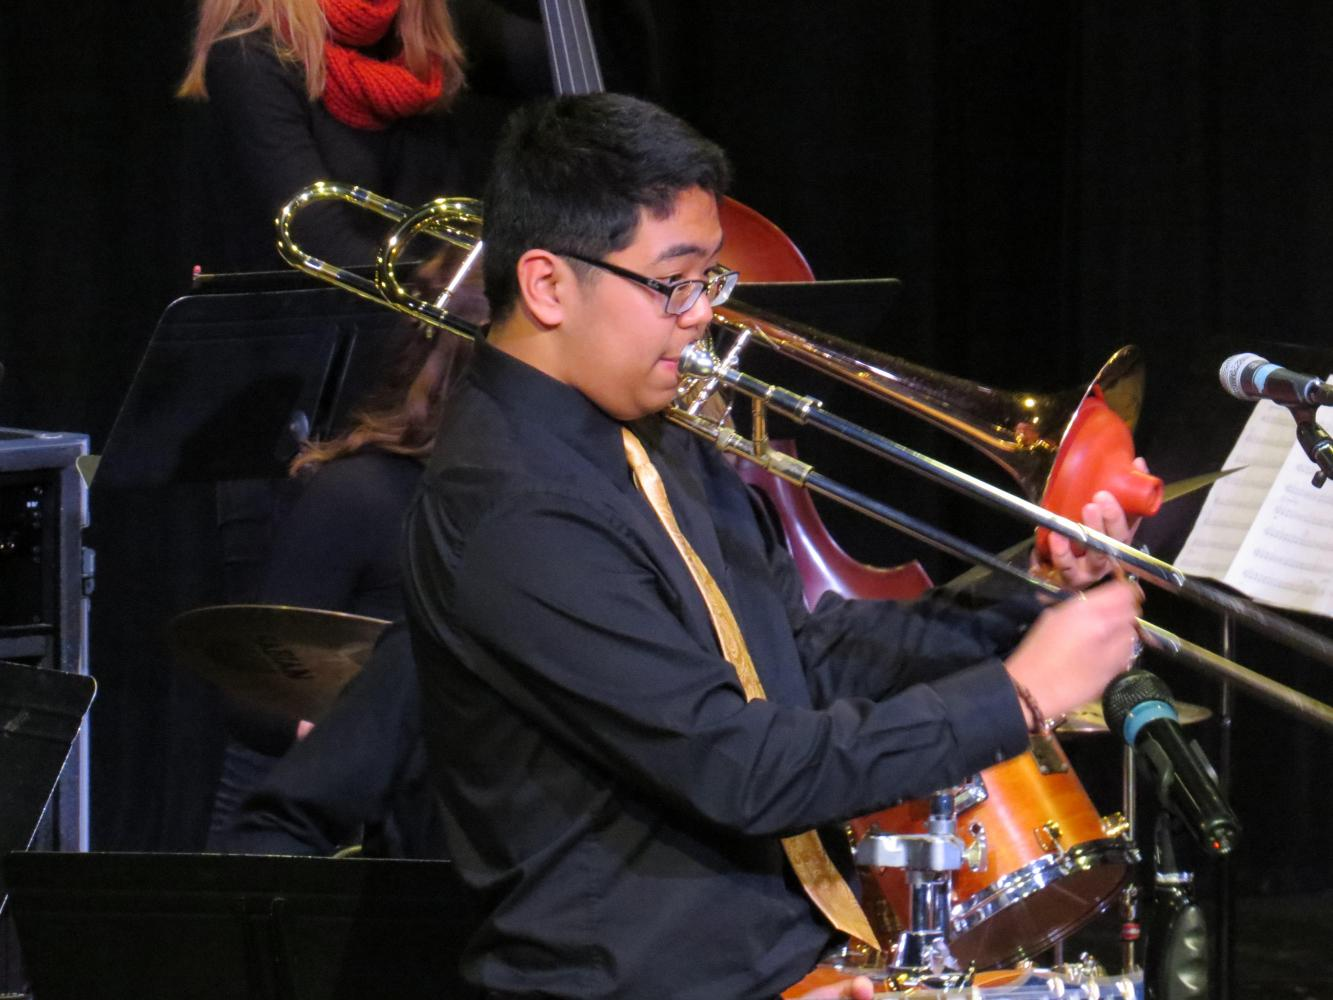 Kenan Lumantas solos on the trombone at a Jazz Ensemble Concert.